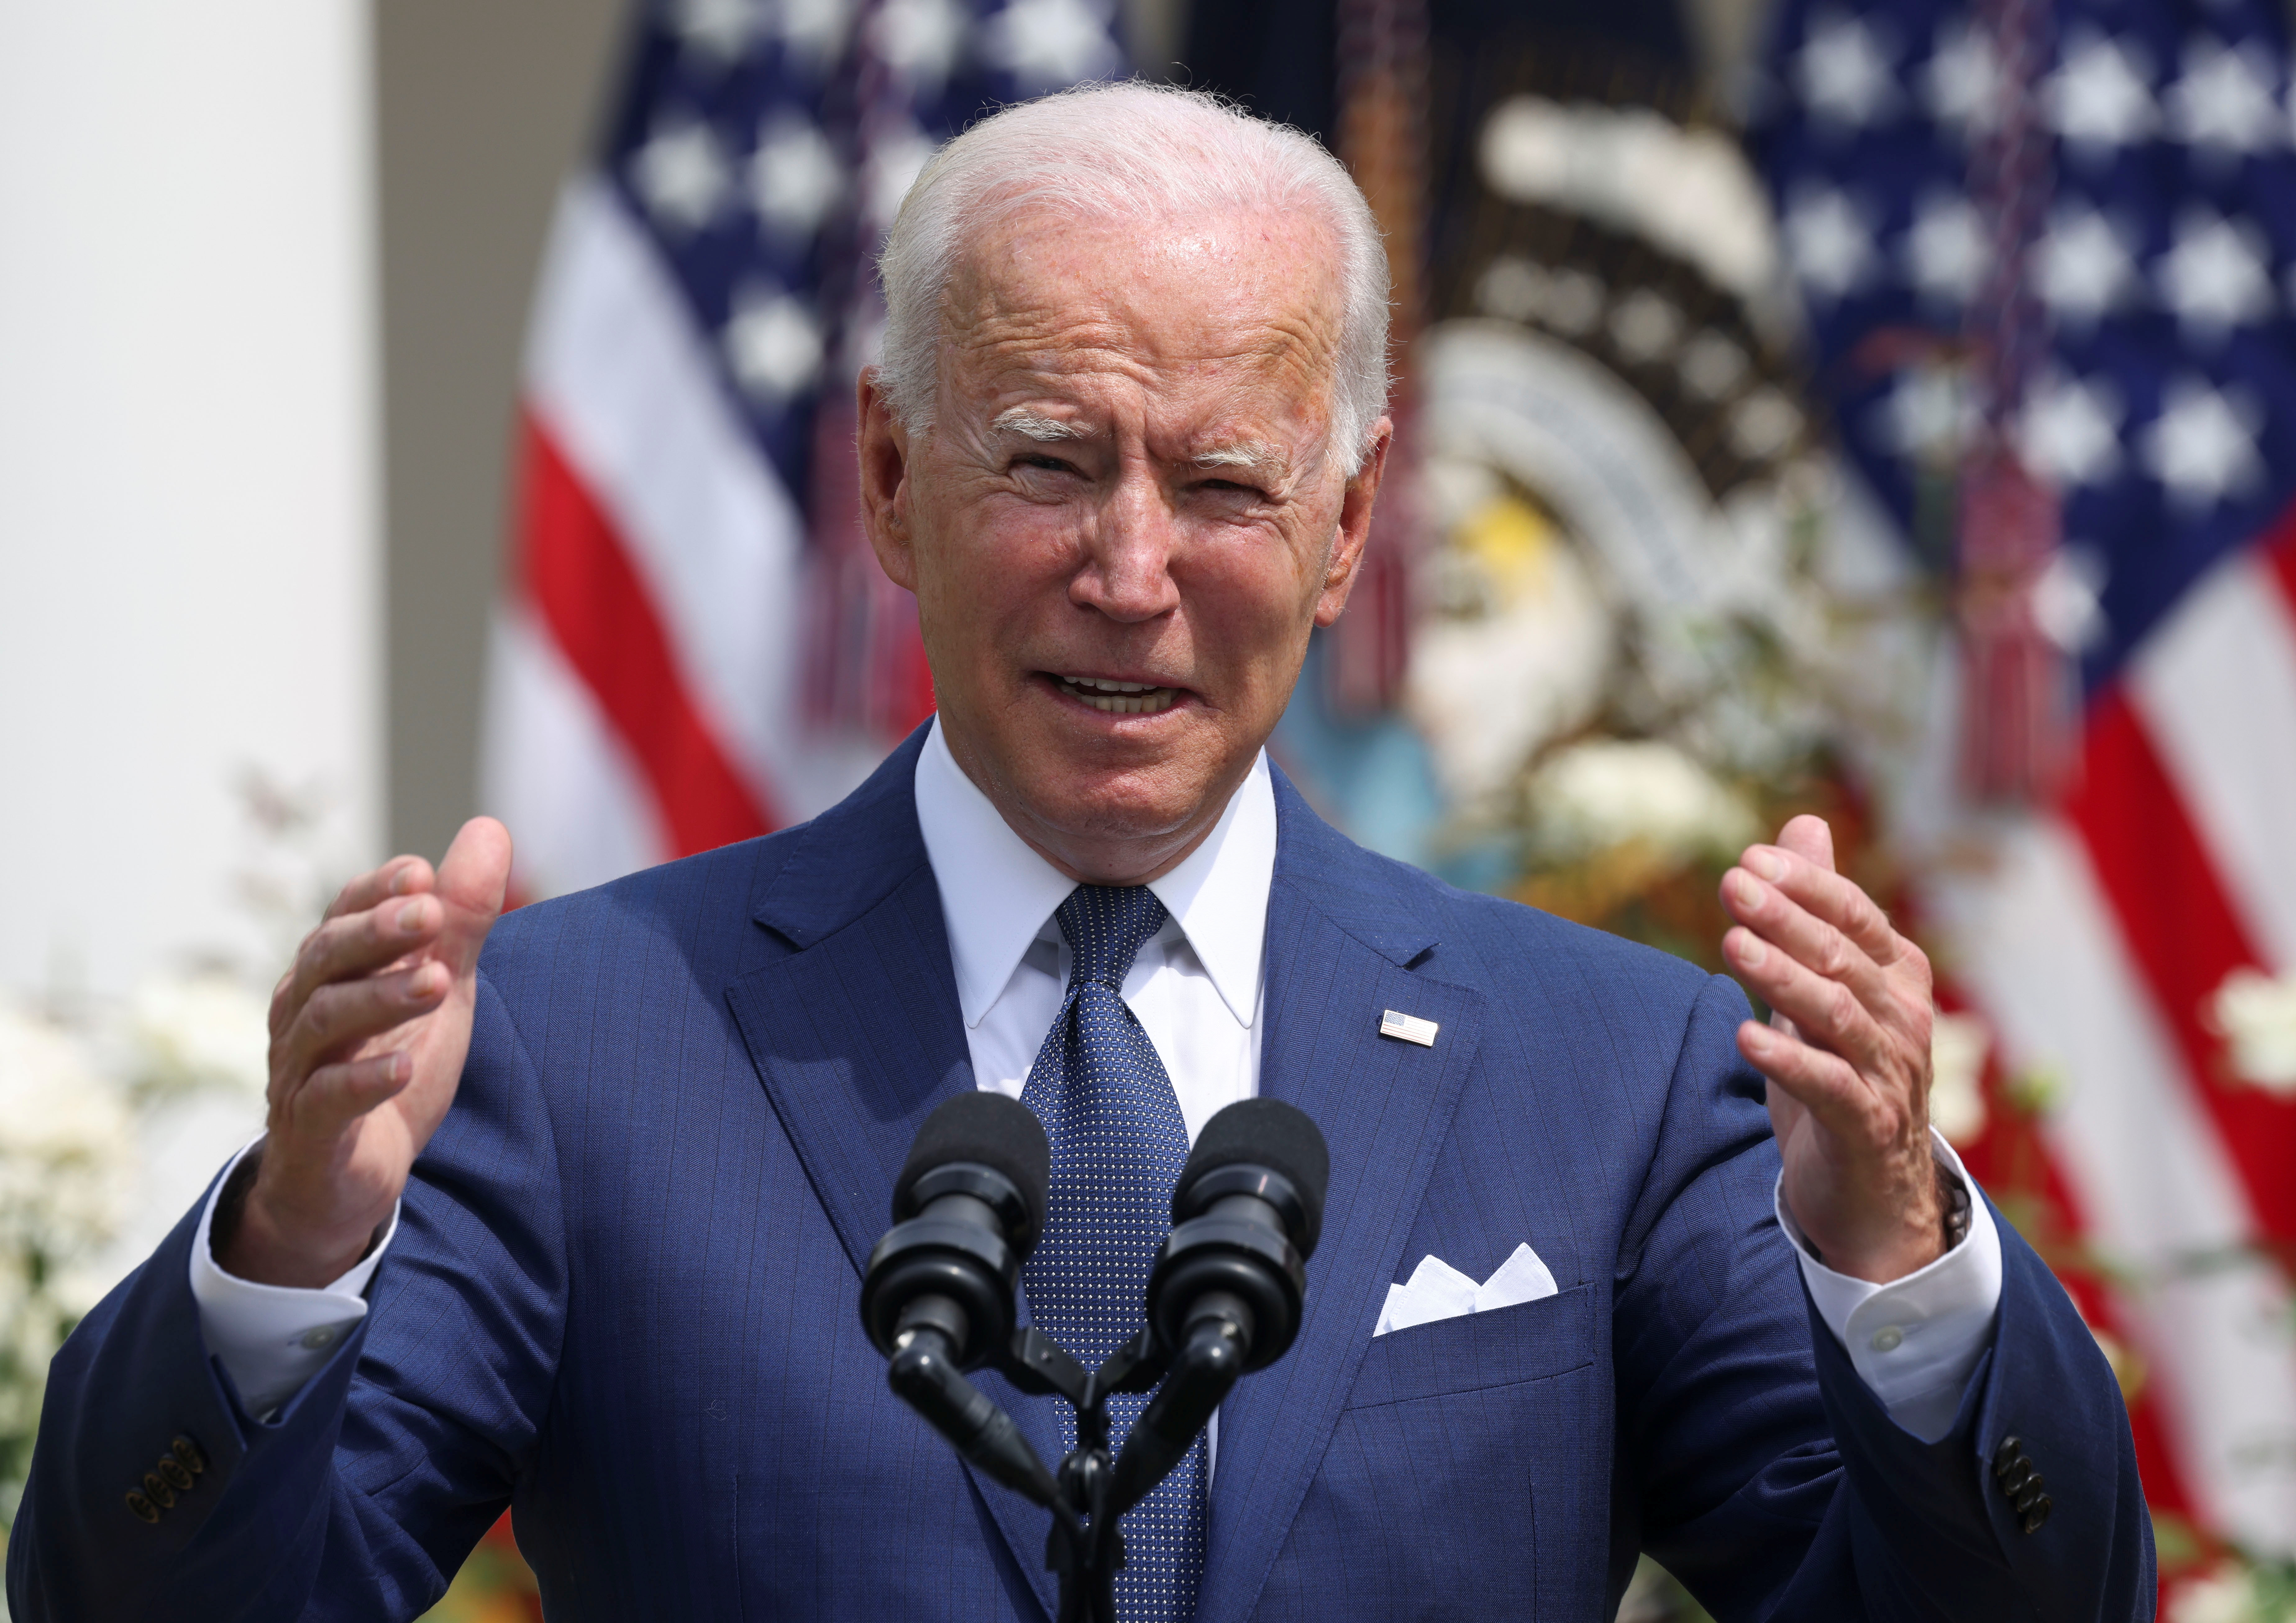 U.S. President Joe Biden delivers remarks during an event to celebrate the 31st anniversary of the Americans with Disabilities Act (ADA) in the White House Rose Garden in Washington, U.S., July 26, 2021. REUTERS/Evelyn Hockstein